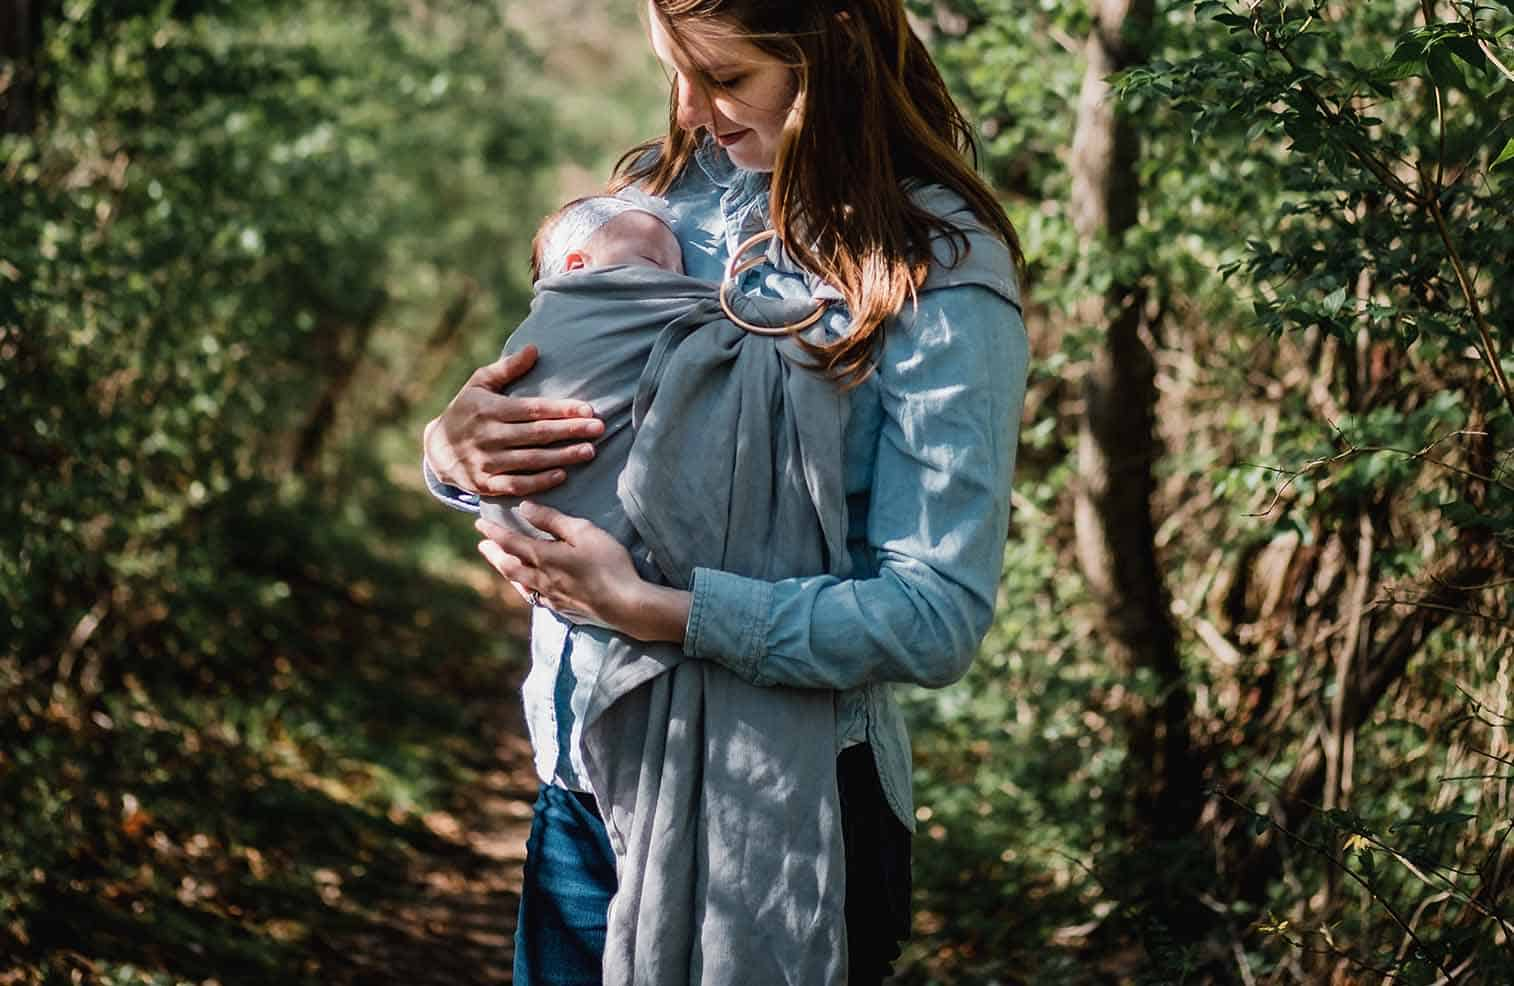 From the moment you start telling people you're pregnant, you start to get all kinds of advice and anecdotes telling you what motherhood has in store for you. But some of it is just straight up not true. Here are 15 myths you can ignore about being a new Mama.